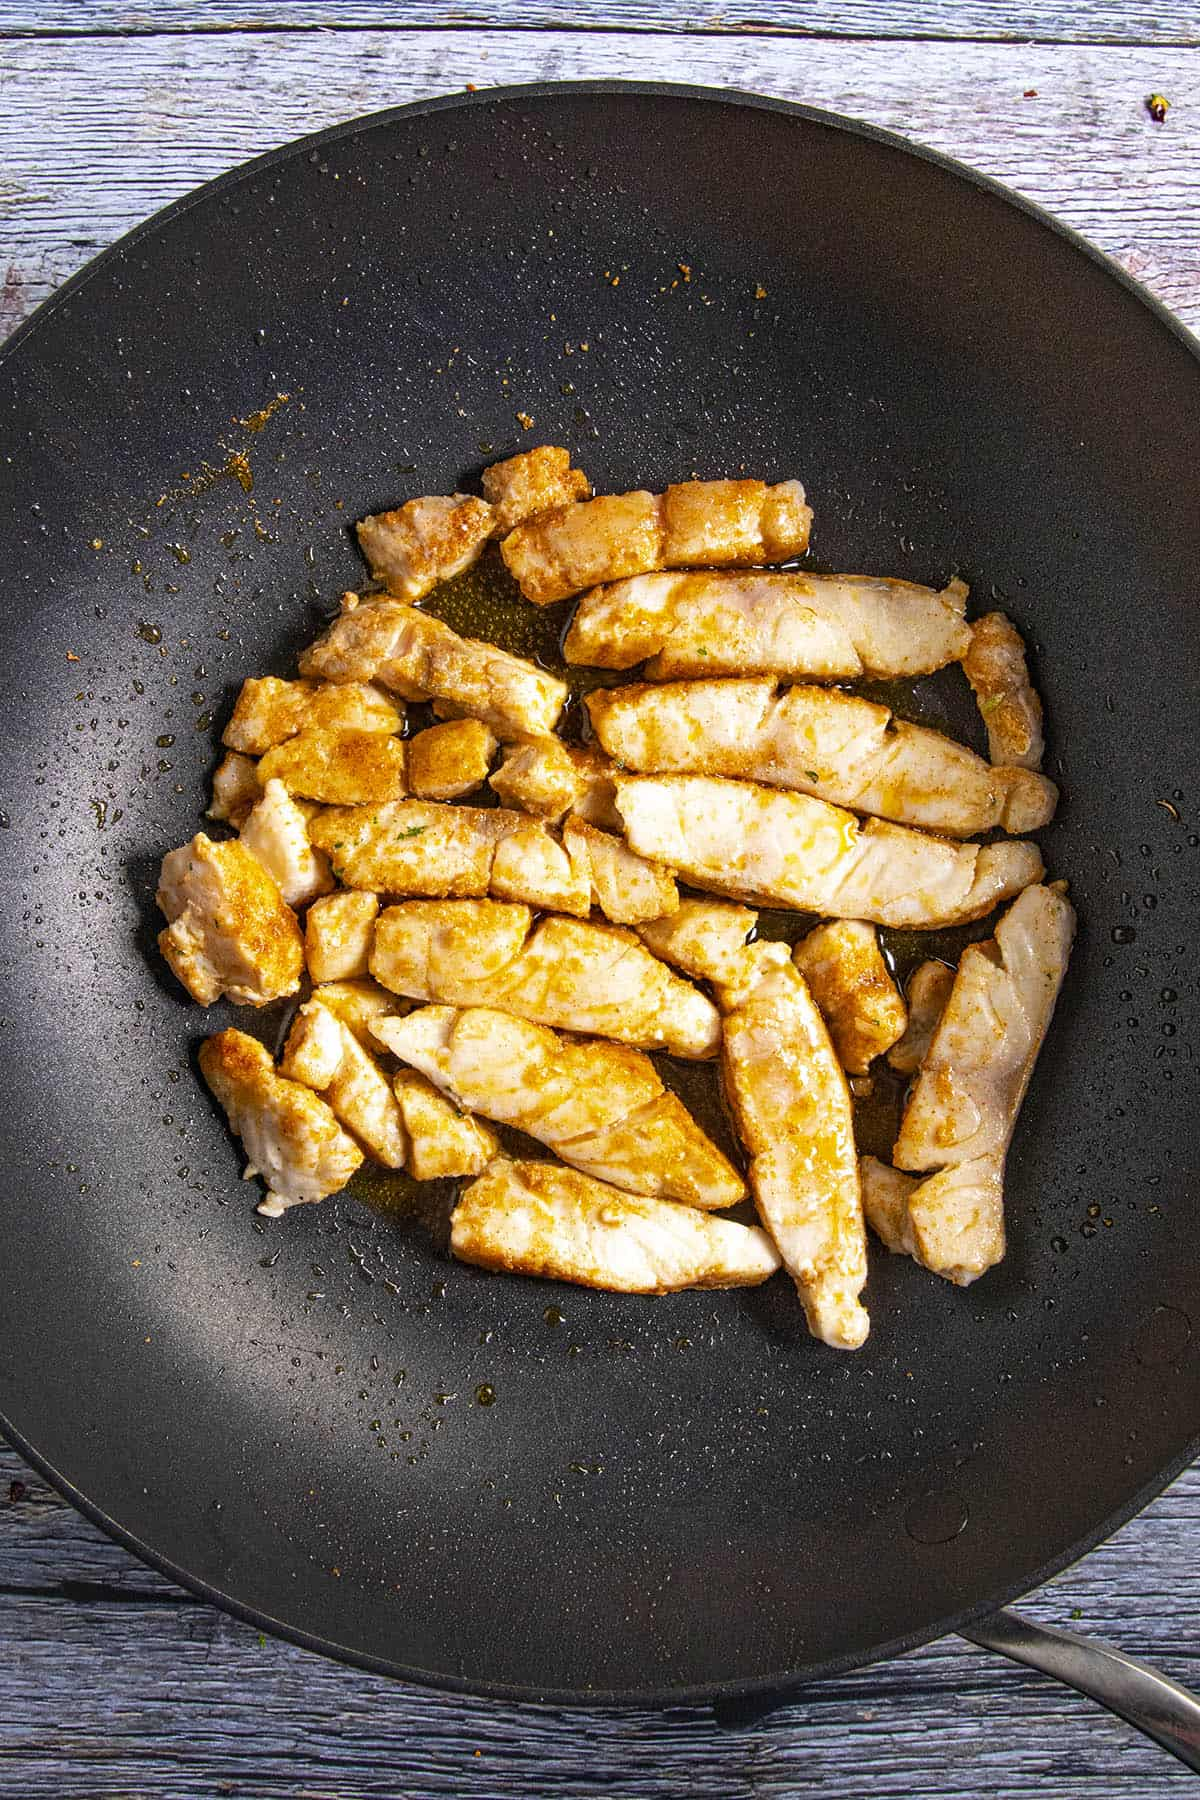 Cooking the fish in a pan to make fish tacos